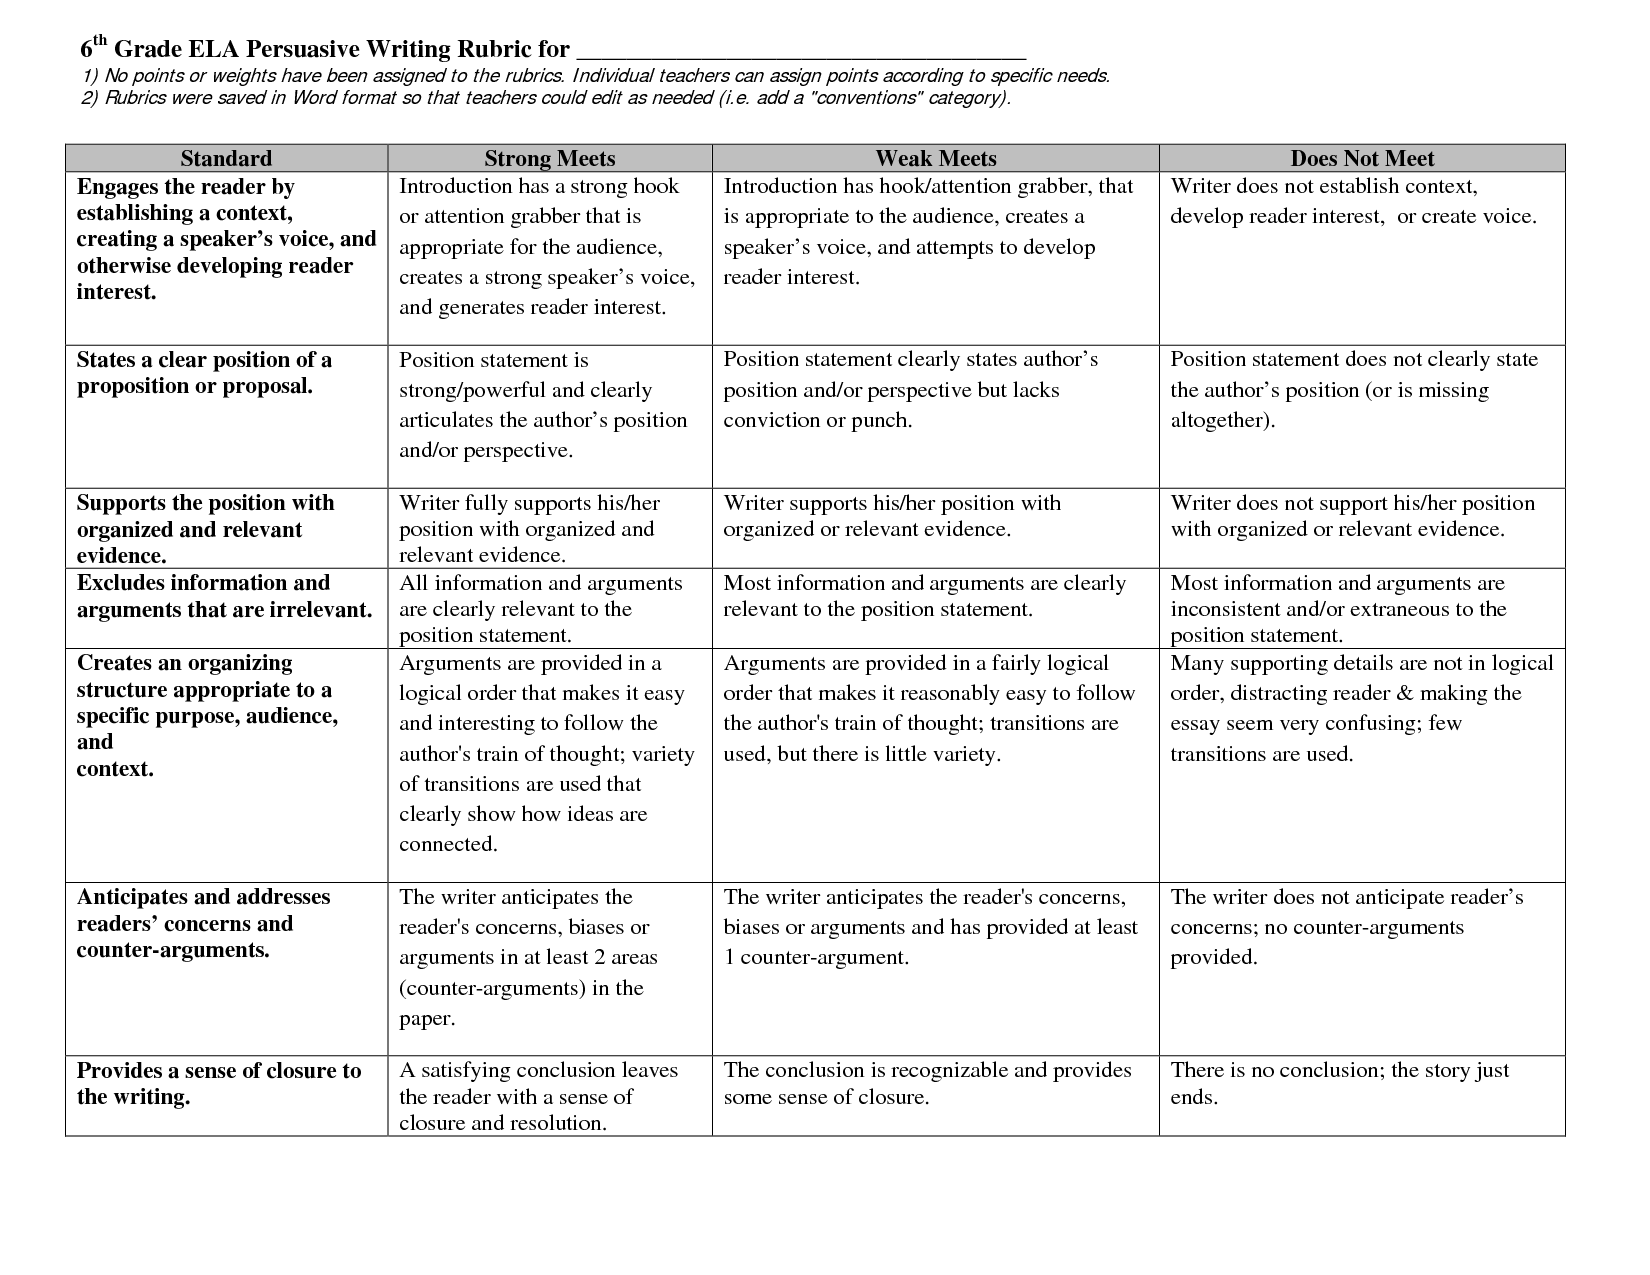 019 Example Of An Argumentative Essay On Persuasion Persuasive Worksheet Techniques How To Write 10th Grade 6th Writing Rubric 6 Stupendous Examples Essays For Middle Schoolers In Apa Format Outline Full